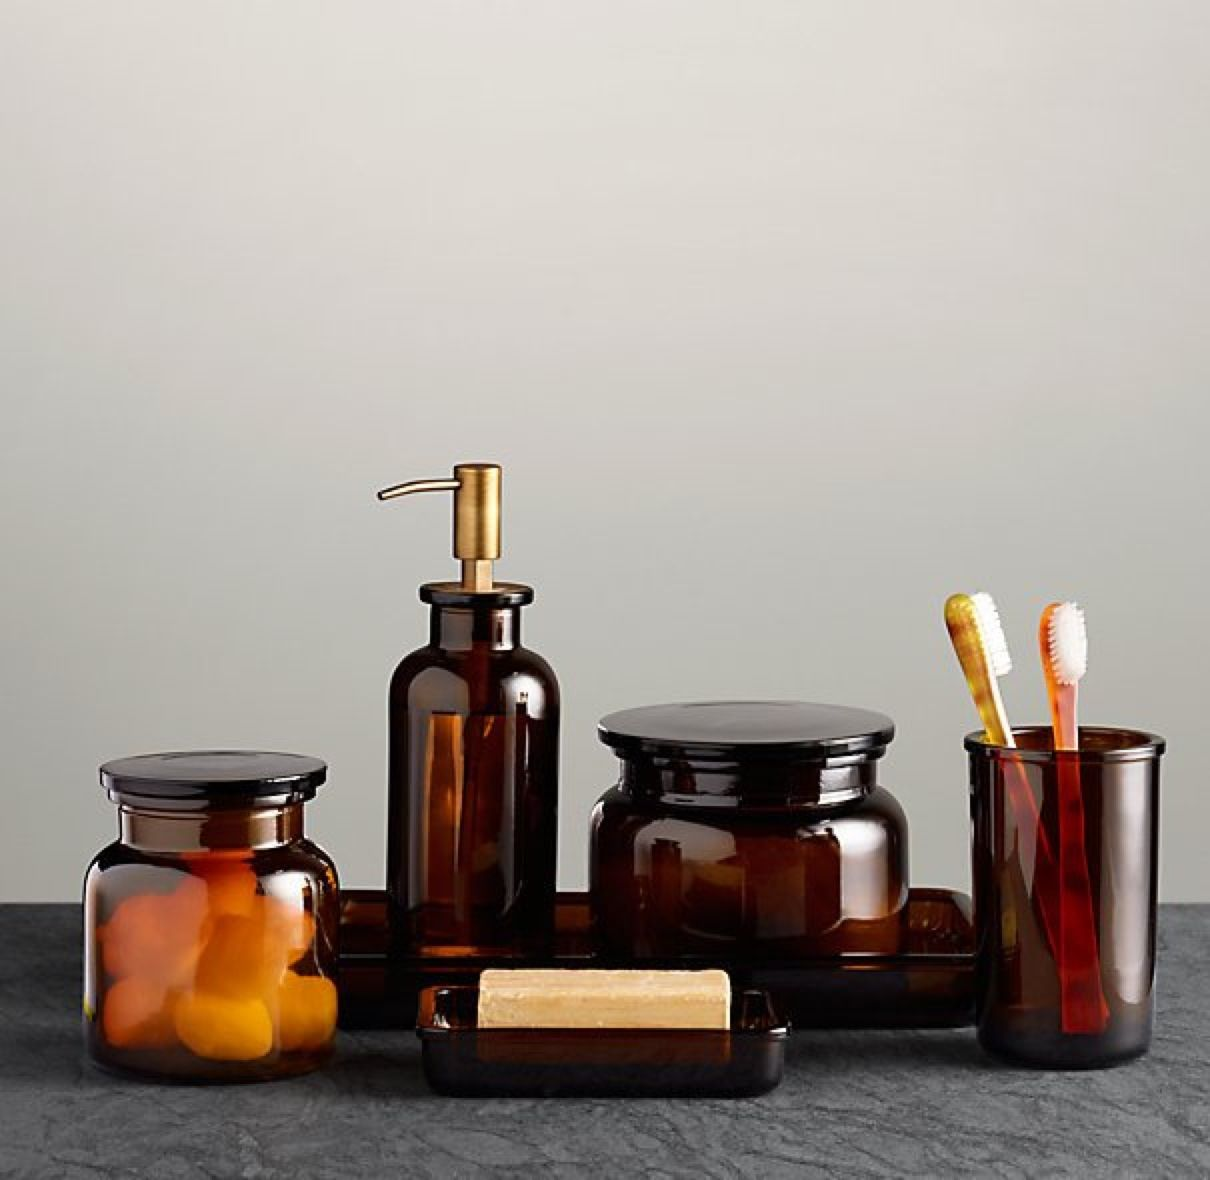 Amber Glass Pharmacy Bath Accessories Things I Need In My Home